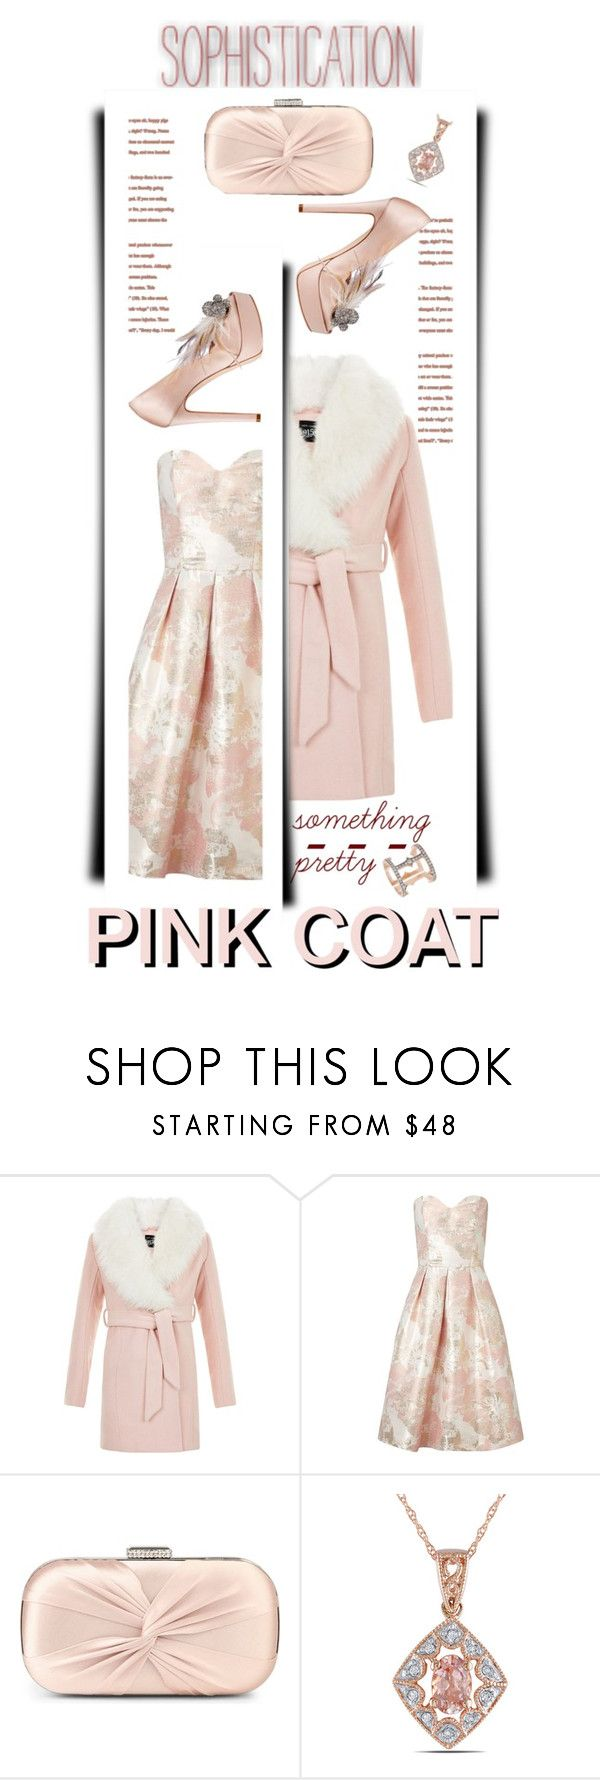 """PINK COAT"" by emcf3548 ❤ liked on Polyvore featuring New Look, Miss Selfridge, Carvela, Miadora, Sylva & Cie and pinkcoats"